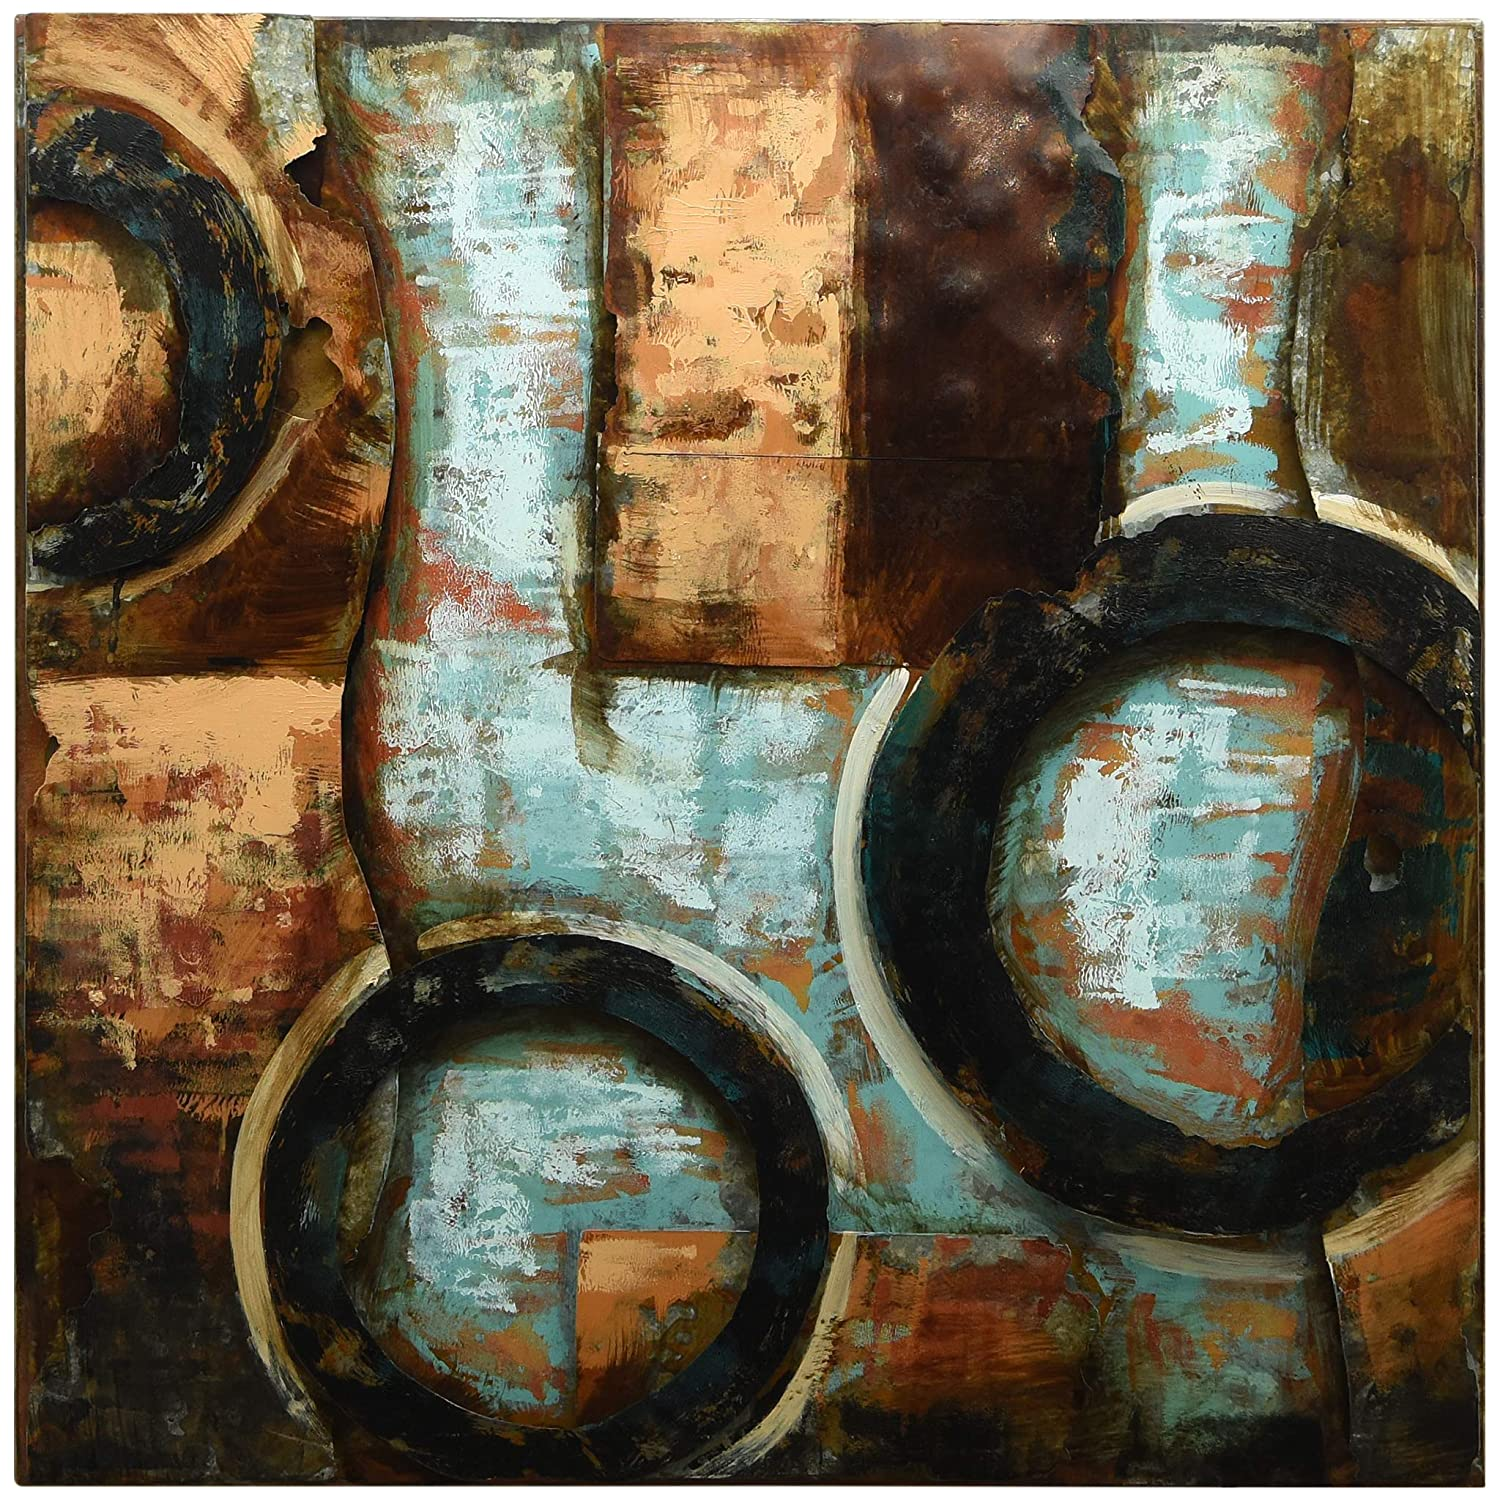 Empire Art Direct 'Revolutions 1' Mixed Media Hand Painted Iron Wall Sculpture by Primo